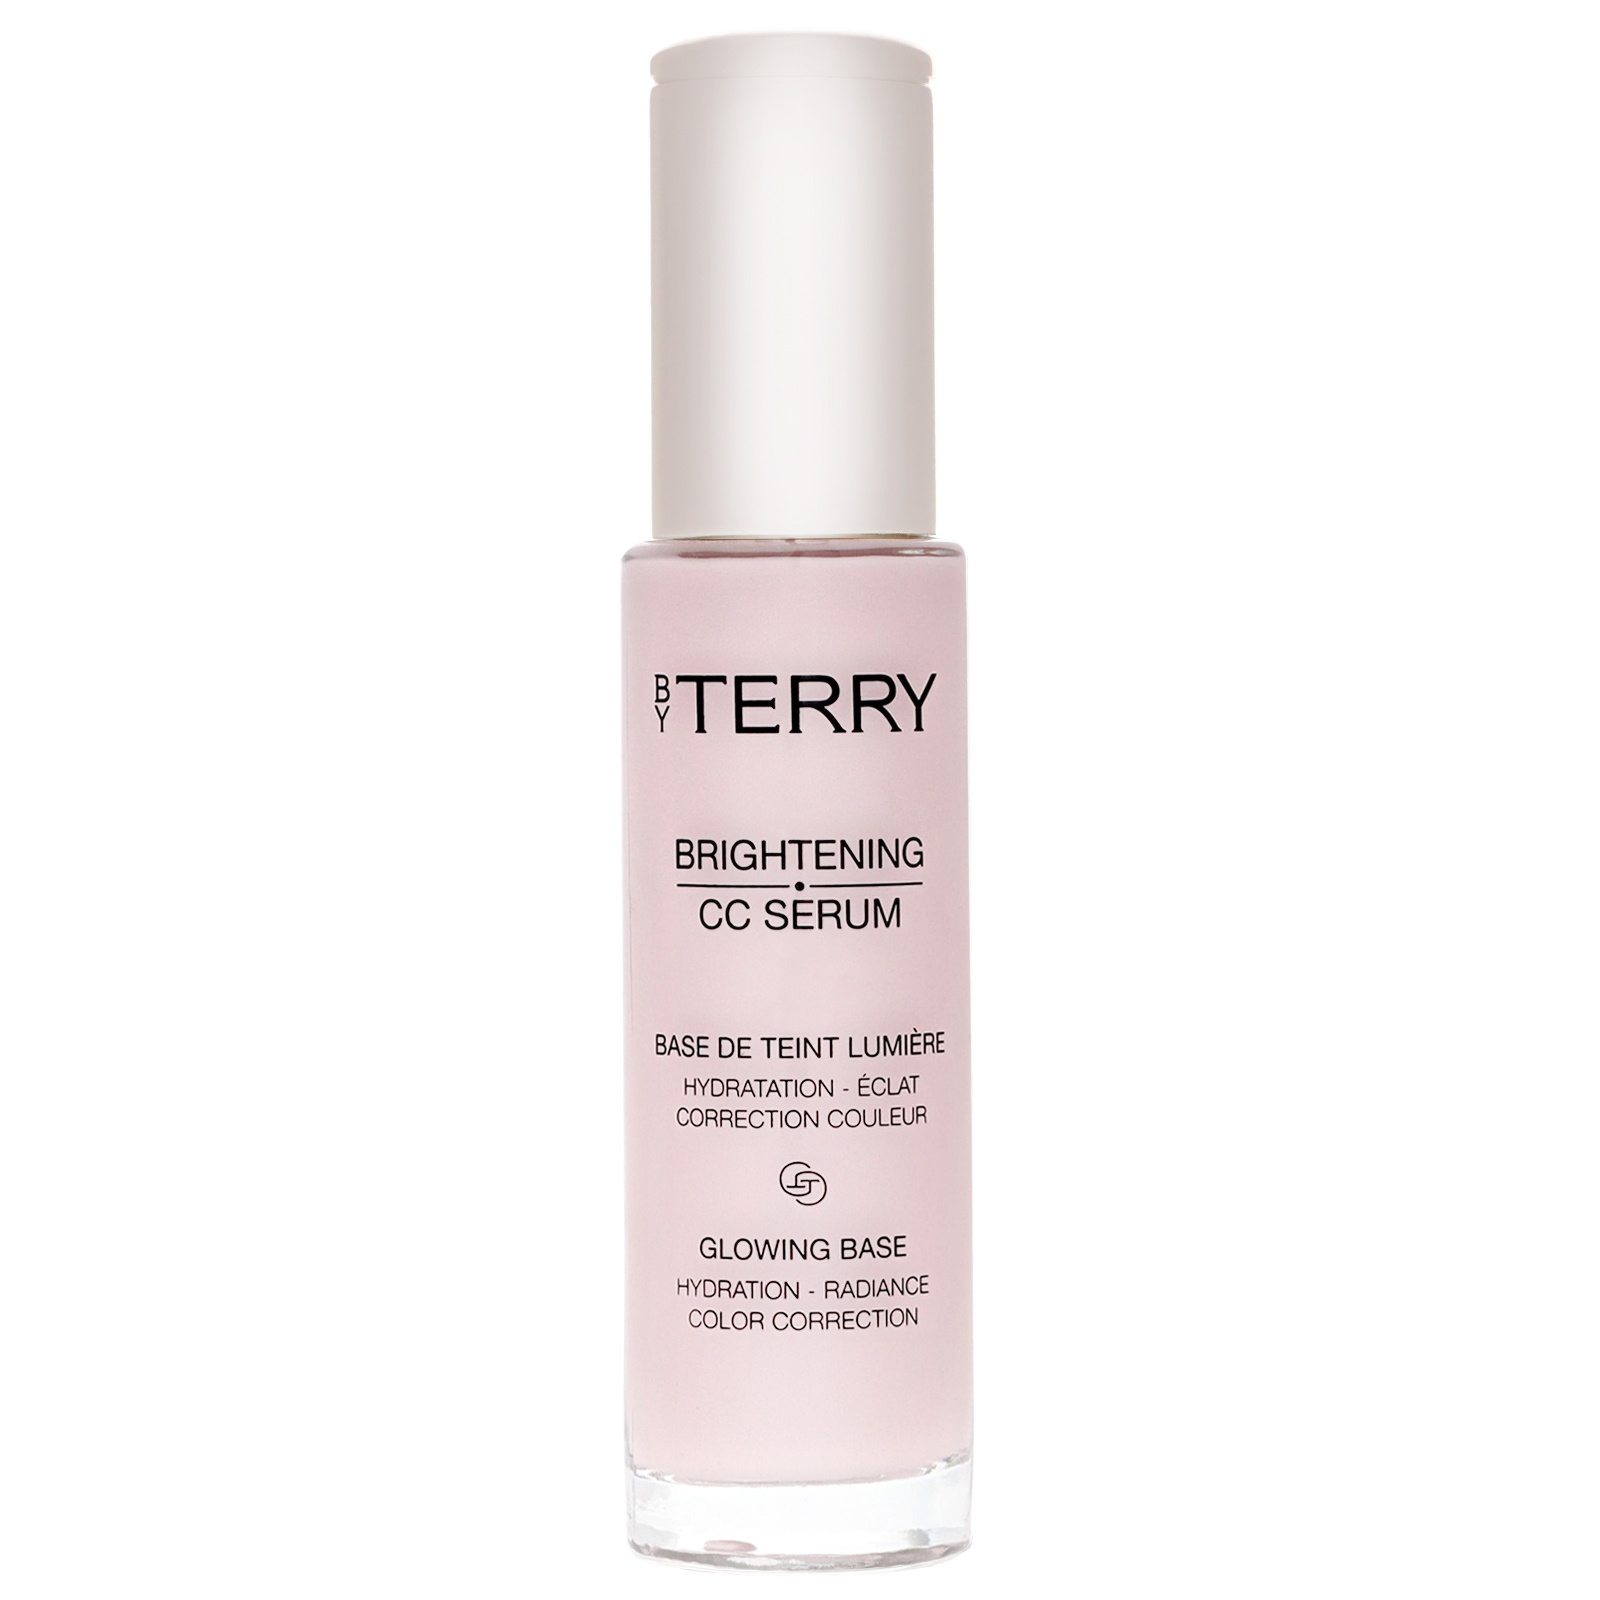 By Terry Cellularose Brightening CC Serum